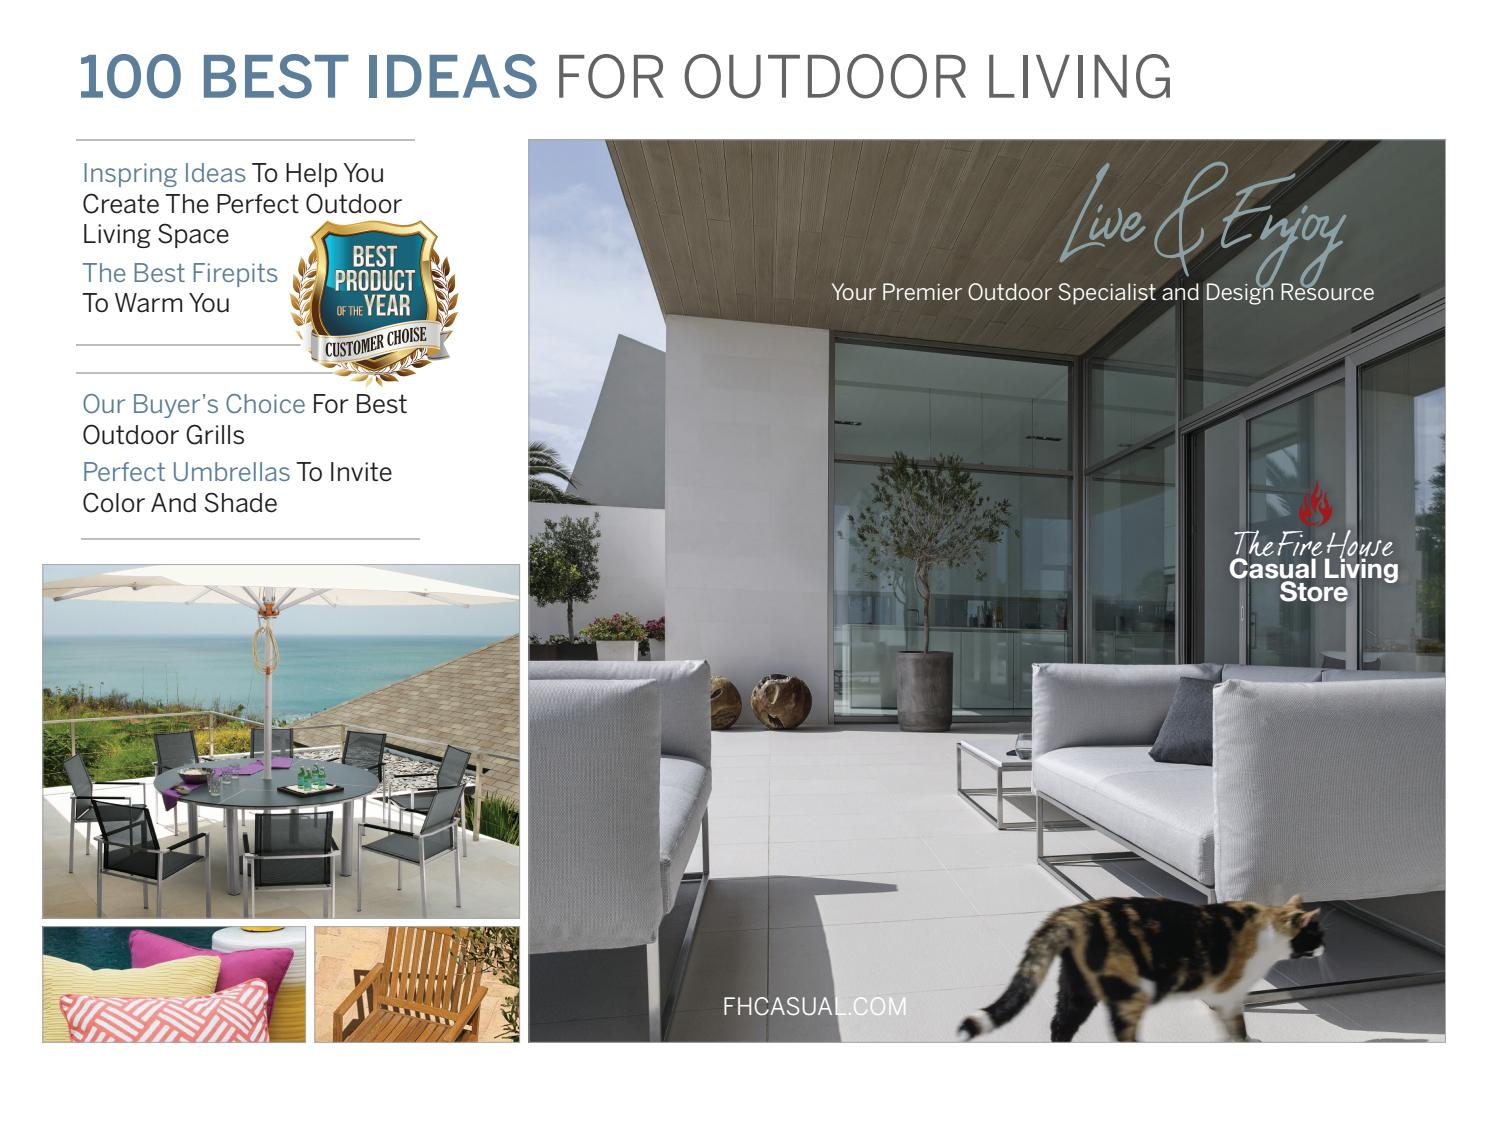 Fire House Casual Living Store 100 Best Ideas For Outdoor Living By Digital  Media And Publishing   Issuu